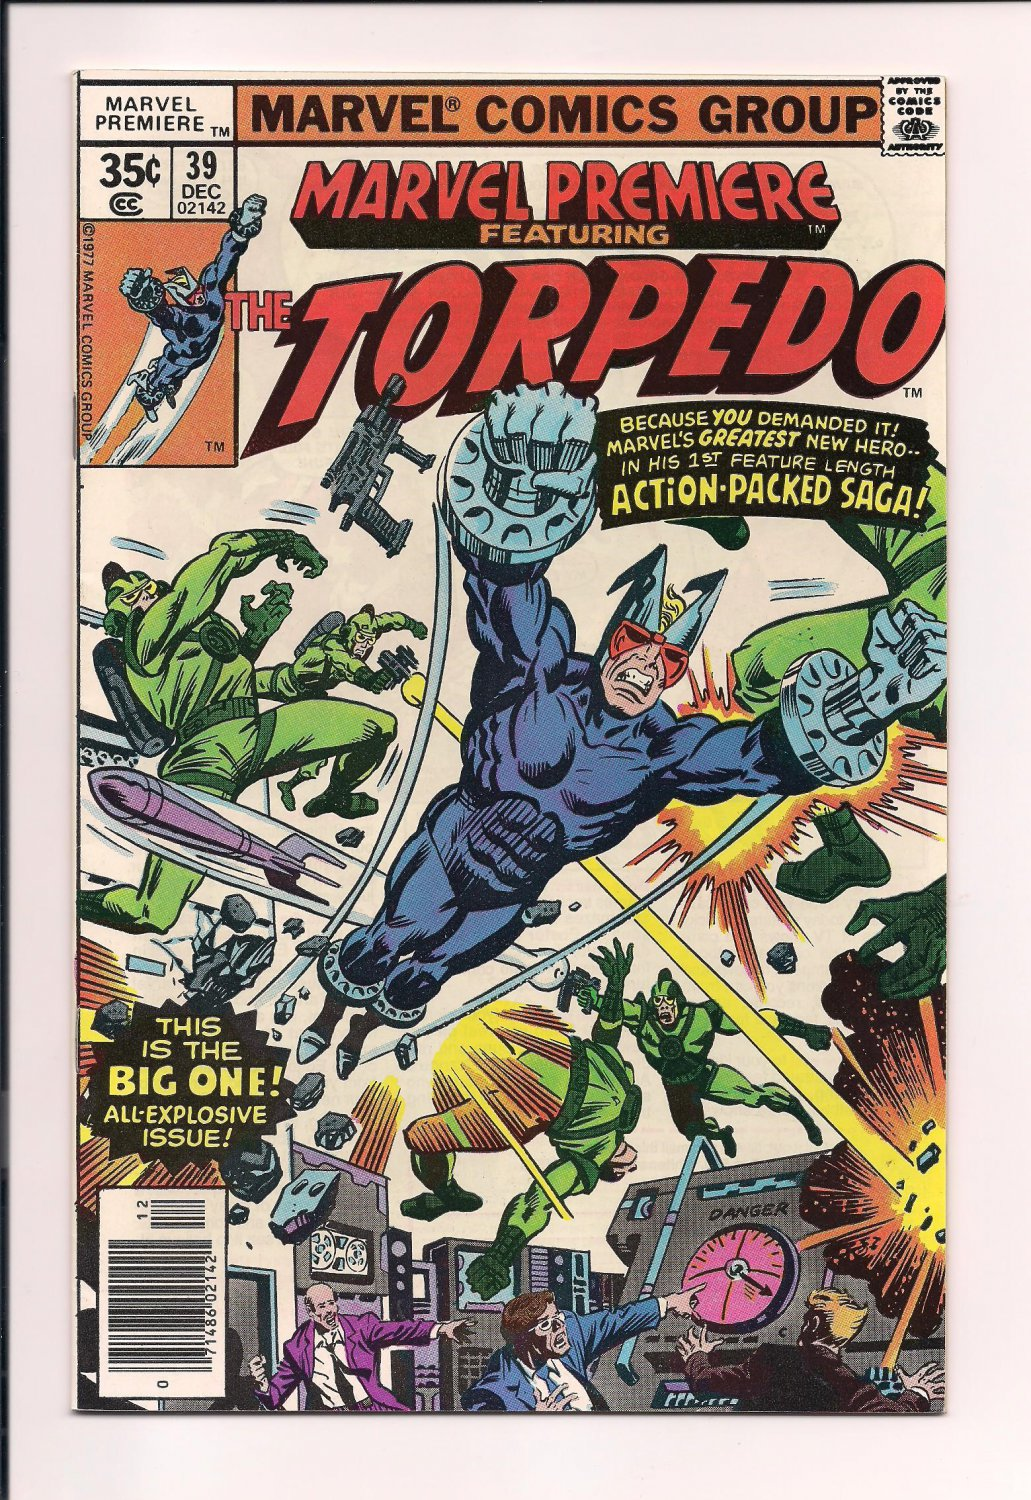 Marvel Premiere #39 (1977) vf or better comic (sh3) featuring The Torpedo